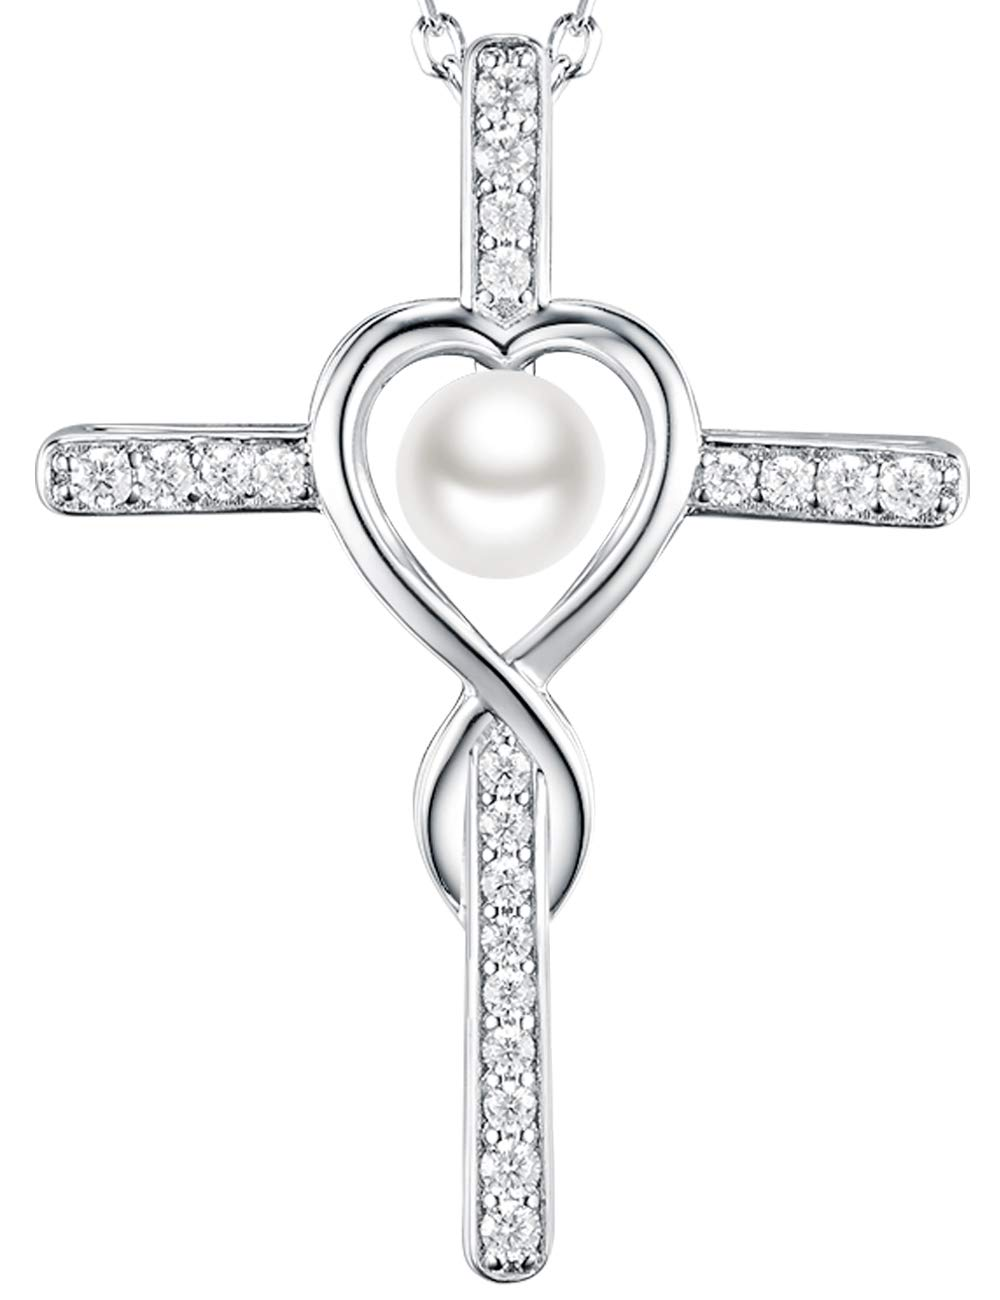 Love Infinity God Cross Jewelry White Pearl Charm Necklace Gifts for Women Anniversary Birthday Gift for Her Wife Girlfriend Fiancee, Grandma, Sterling Silver Swarovski Pendant,18''+2'' Chain